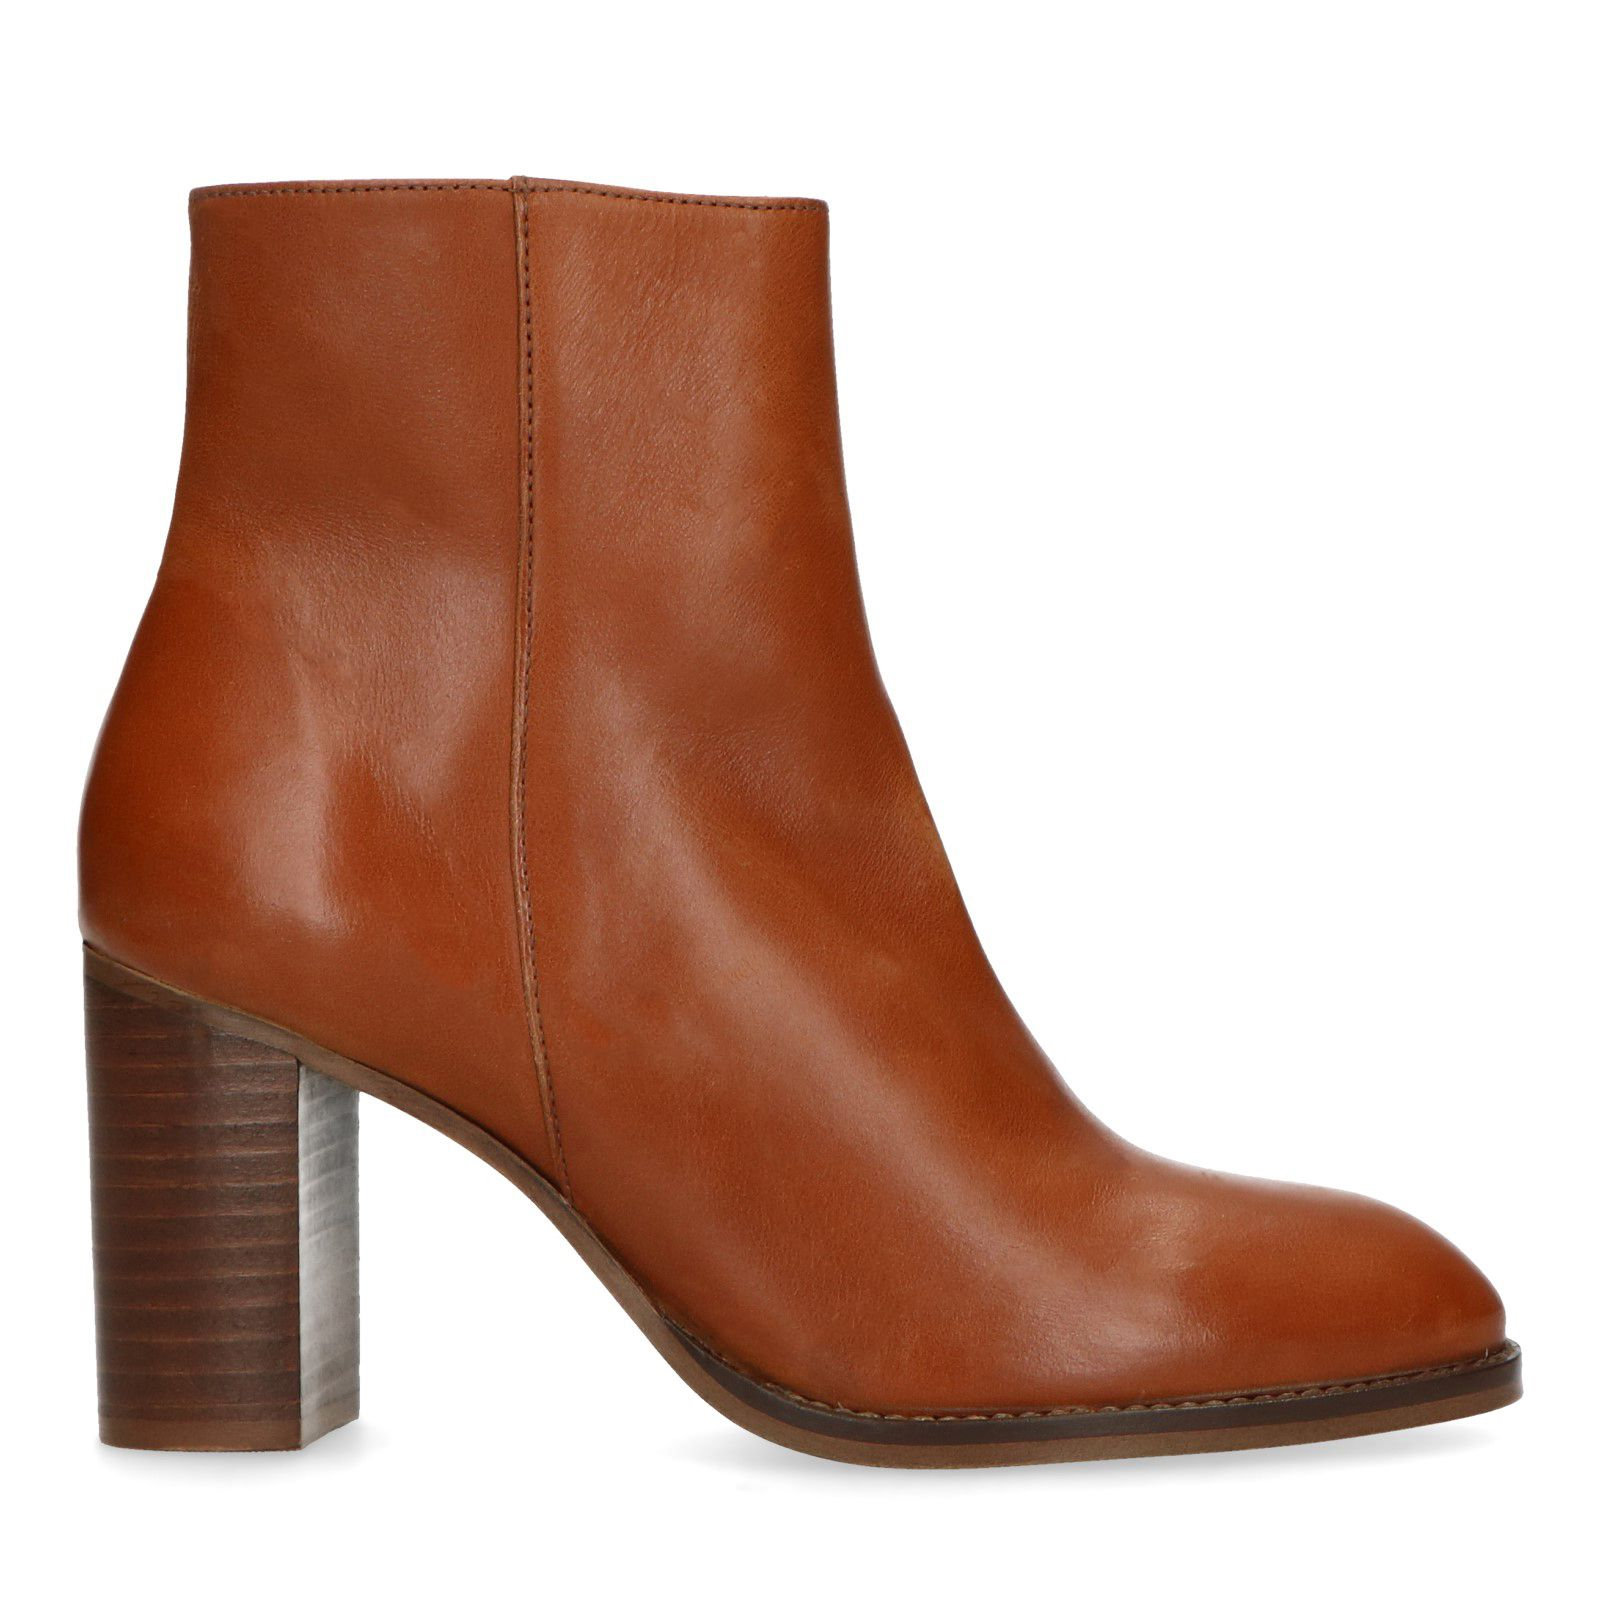 Sacha Bottines cuir à talon marron